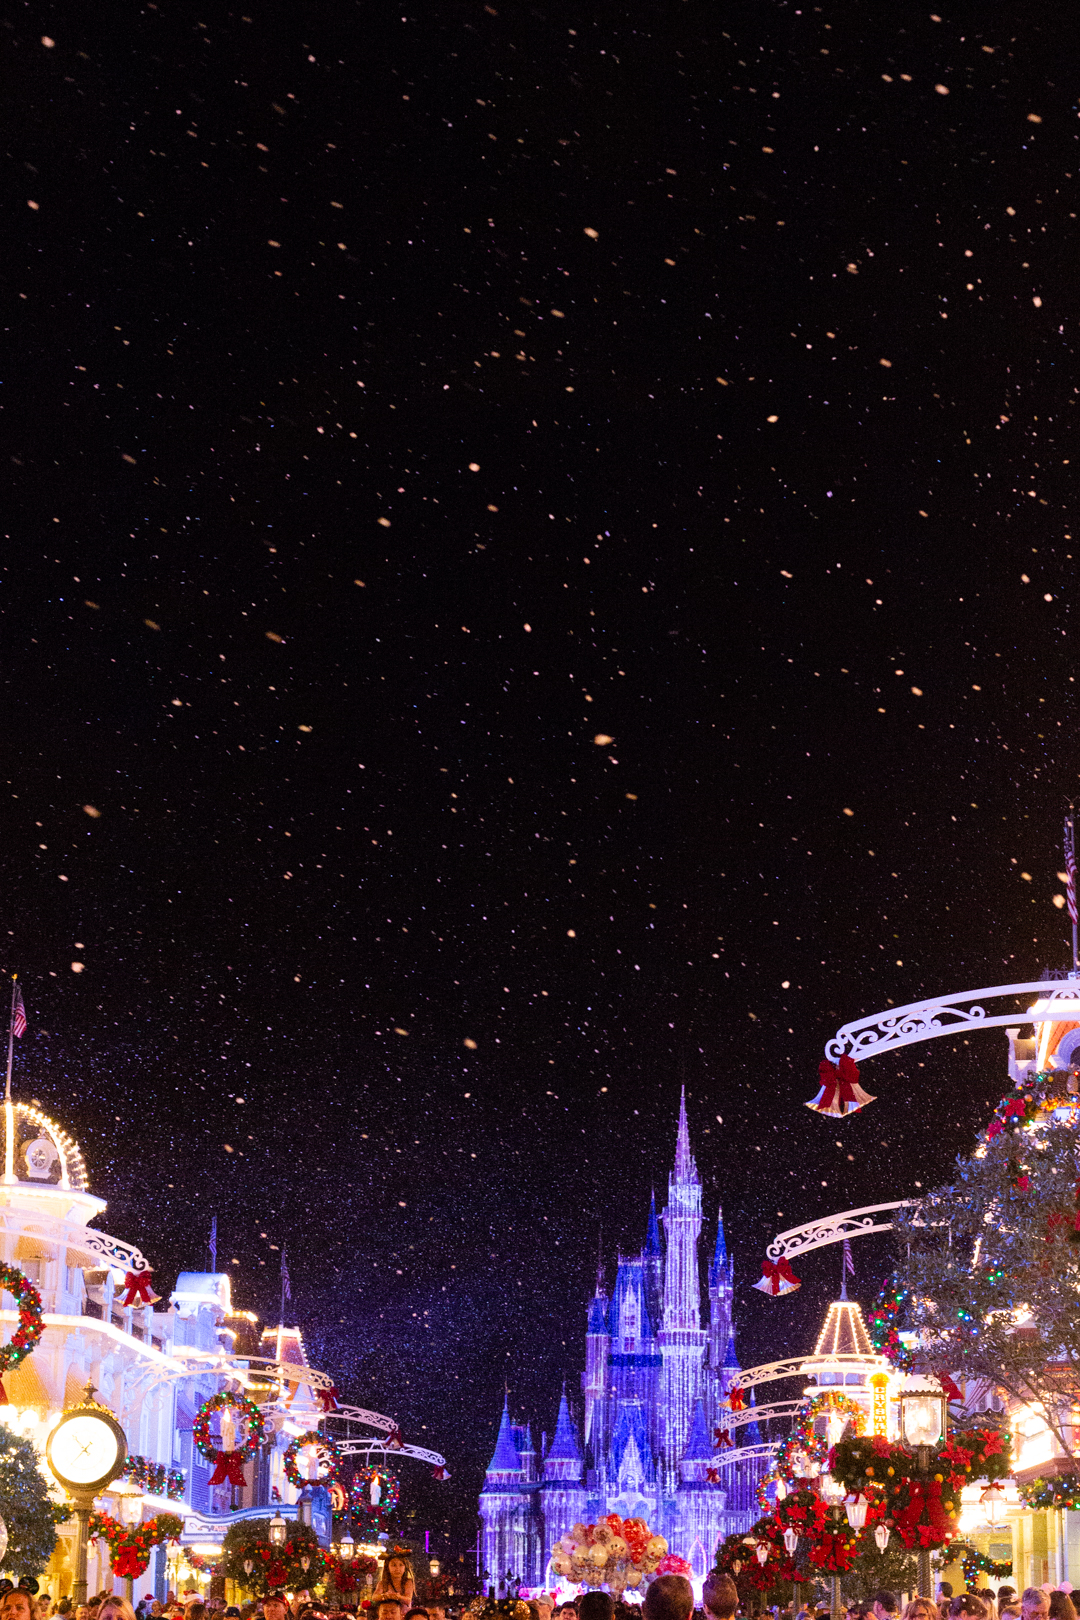 Main Street U.S.A. with Cindarella's Castle during the winter.